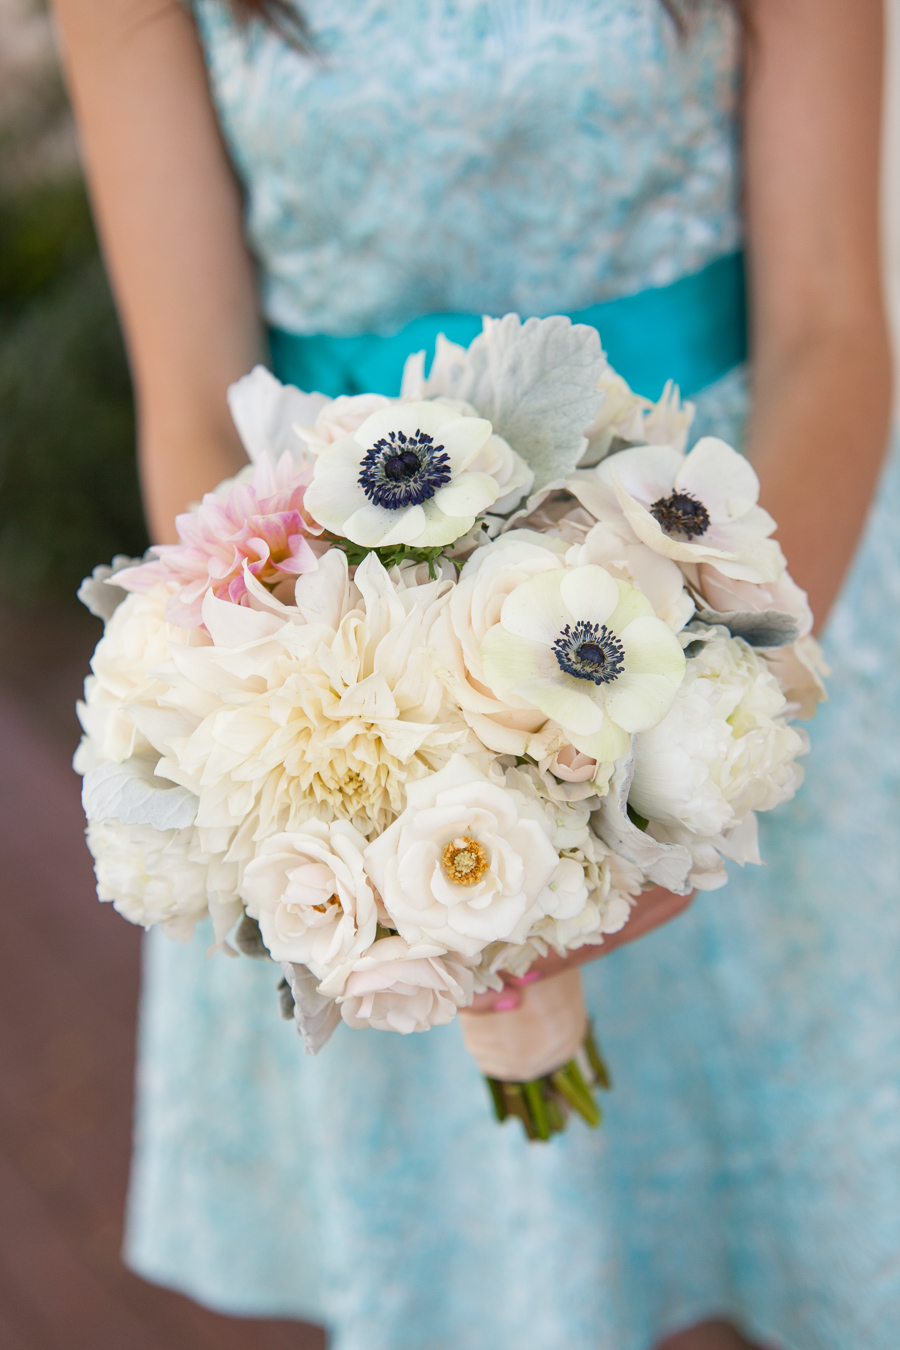 melissamusgrove.com | Tiffany Blue Wedding Details at Belmond El Encanto | Santa Barbara Wedding Photographer | Melissa Musgrove Photography